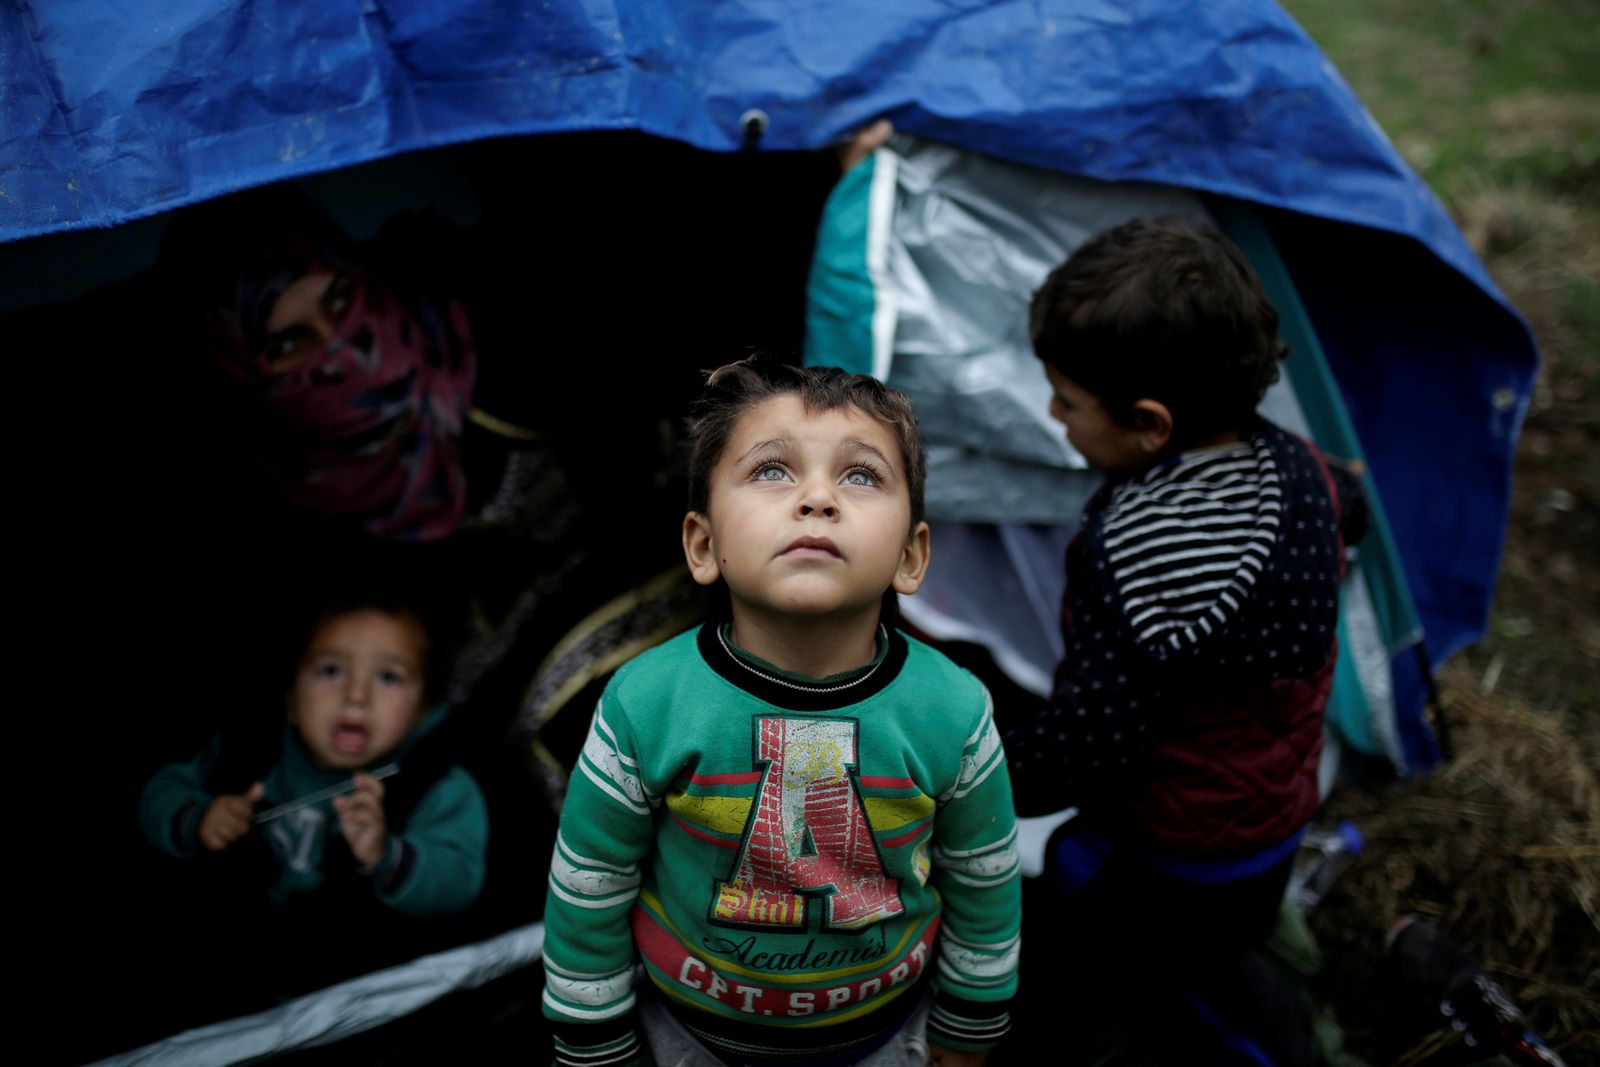 FILE PHOTO: A Syrian refugee boy stands in front of his family tent at a makeshift camp for refugees and migrants next to the Moria camp on the island of Lesbos